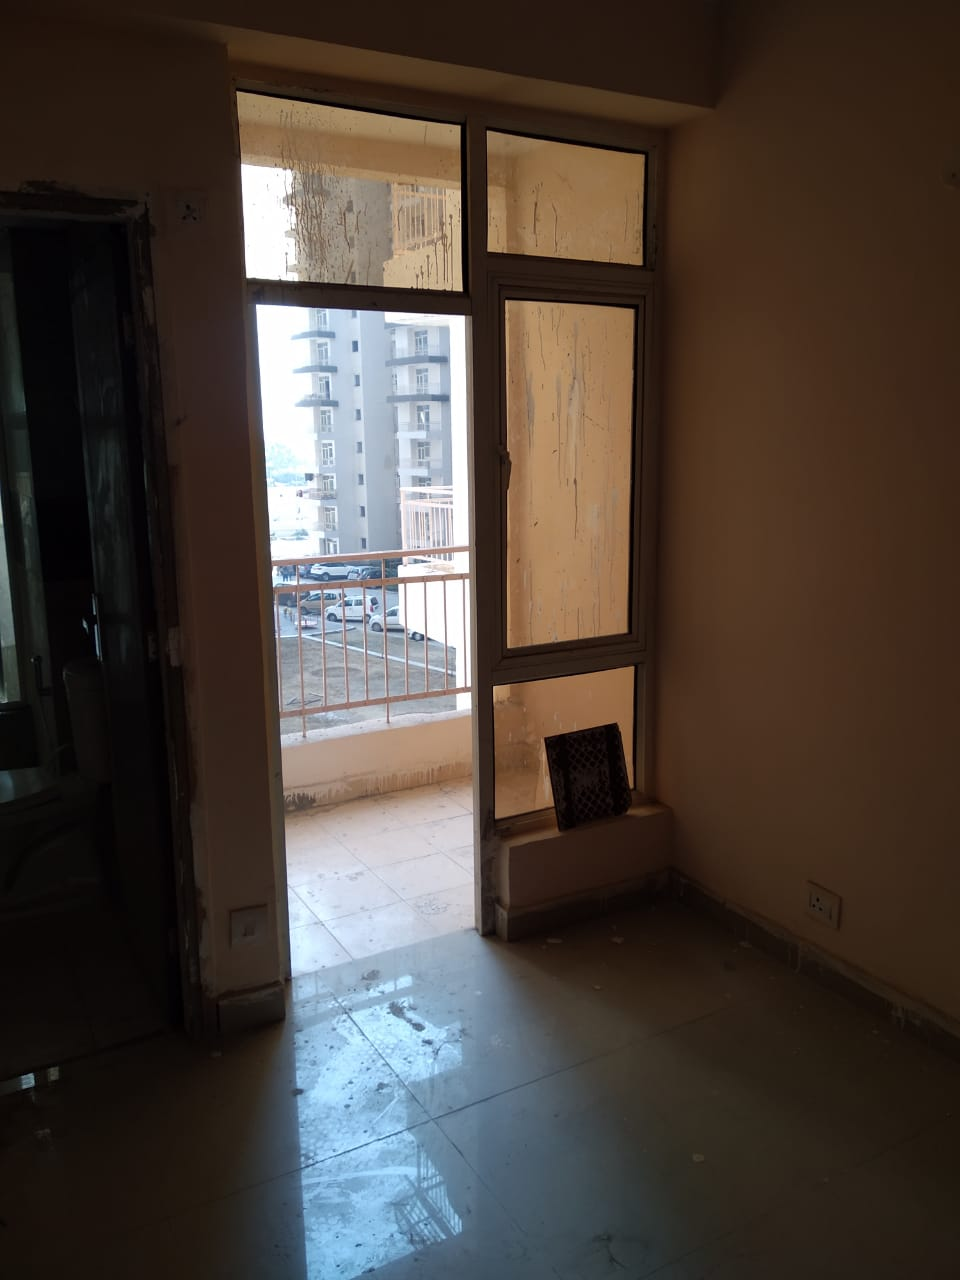 1 BHK society flat in noida extension